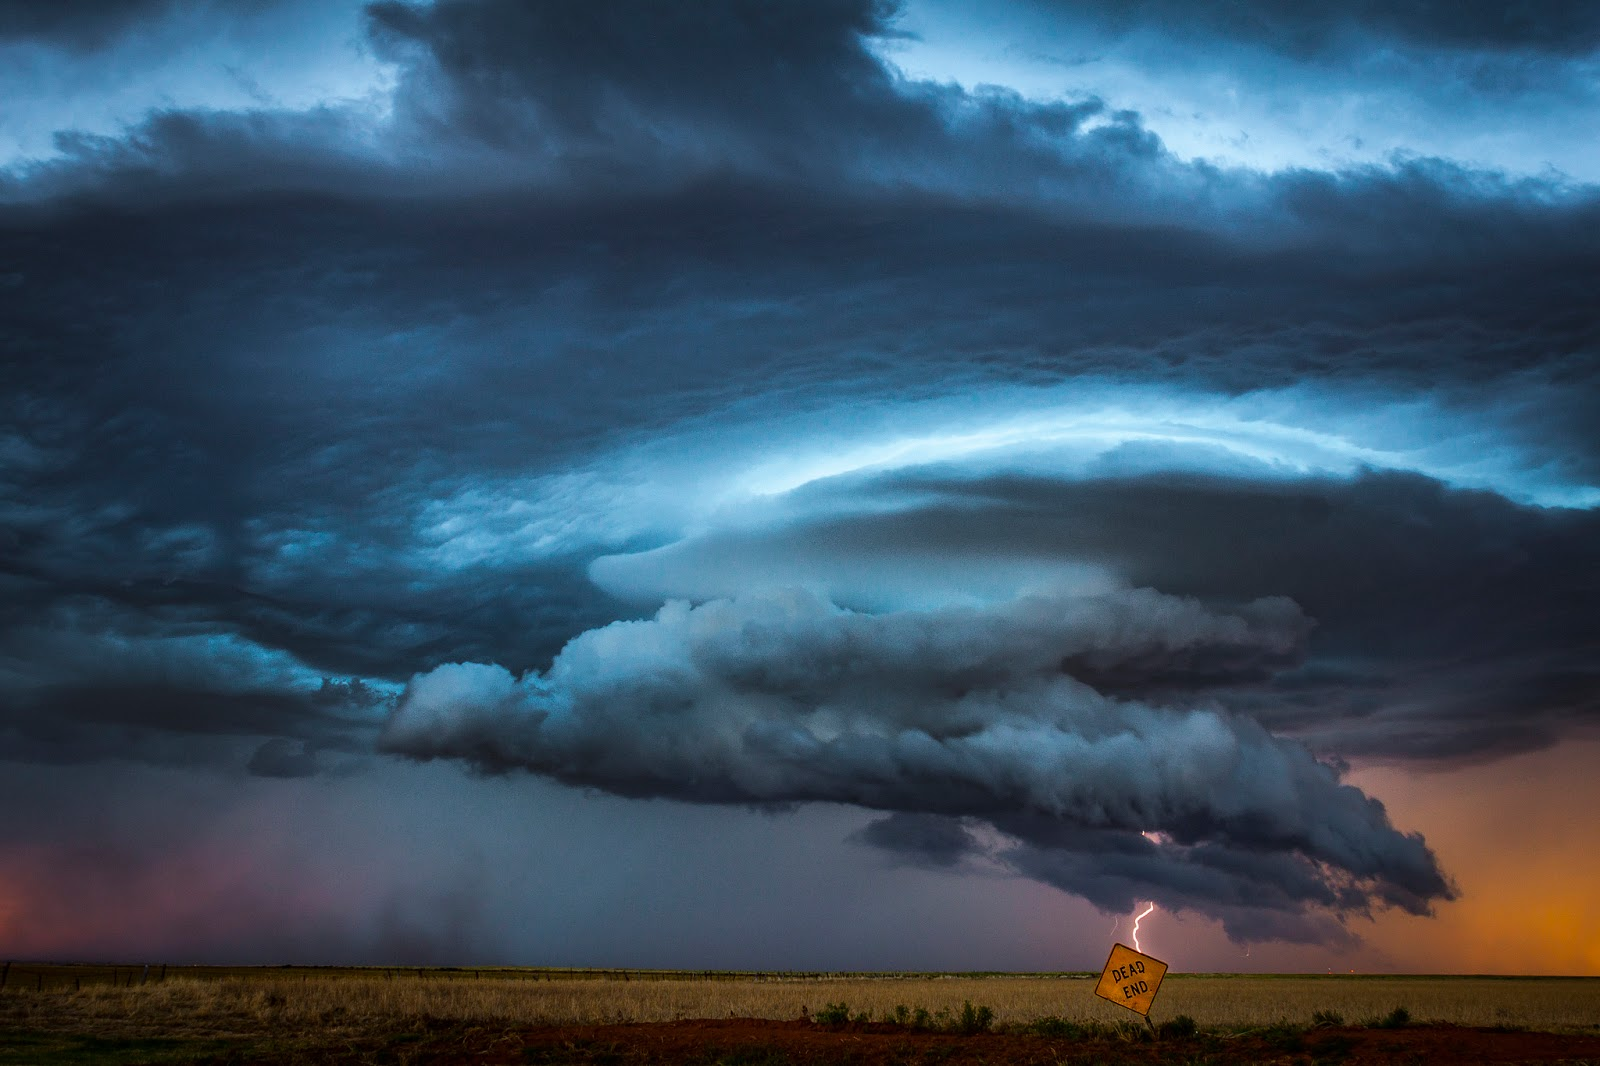 Tornado Supercell Diagram Electronic Relay Wiring Scary And Amazing Structure Of Thunderstorm